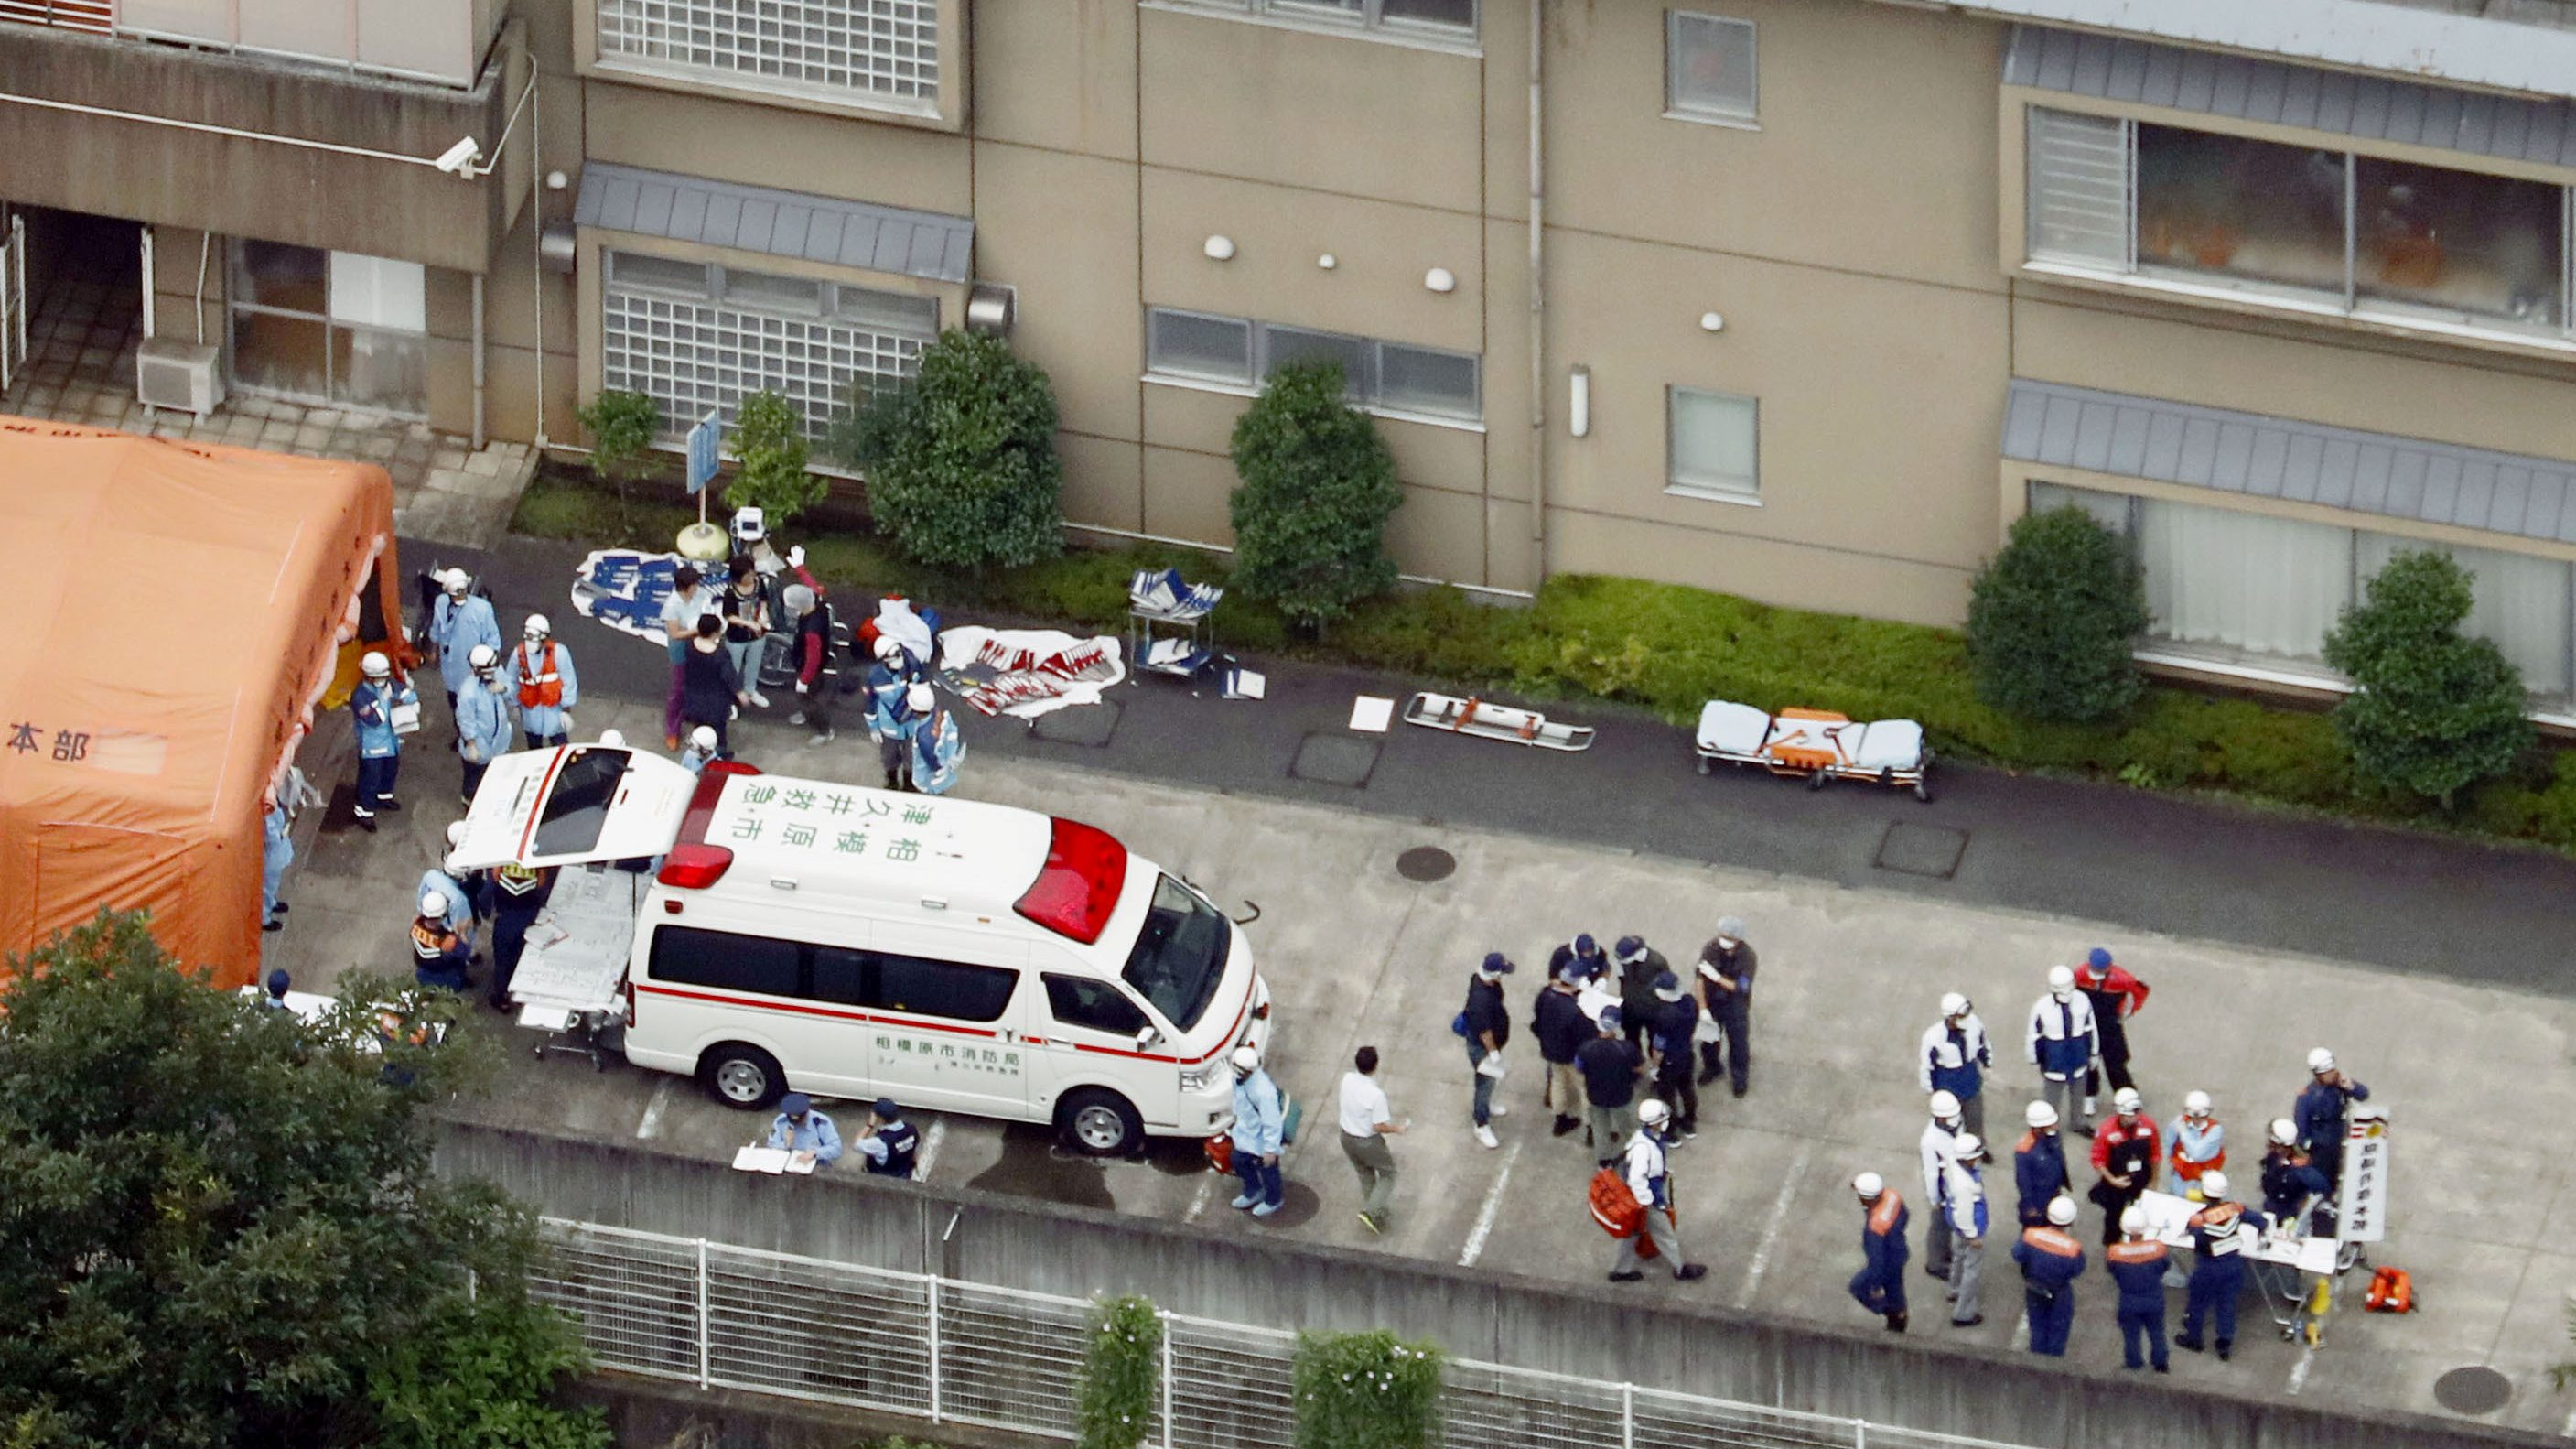 Police officers and rescue workers are seen in a facility for the disabled, where at least 19 people were killed and as many as 20 wounded by a knife-wielding man, in Sagamihara, Kanagawa prefecture, Japan.